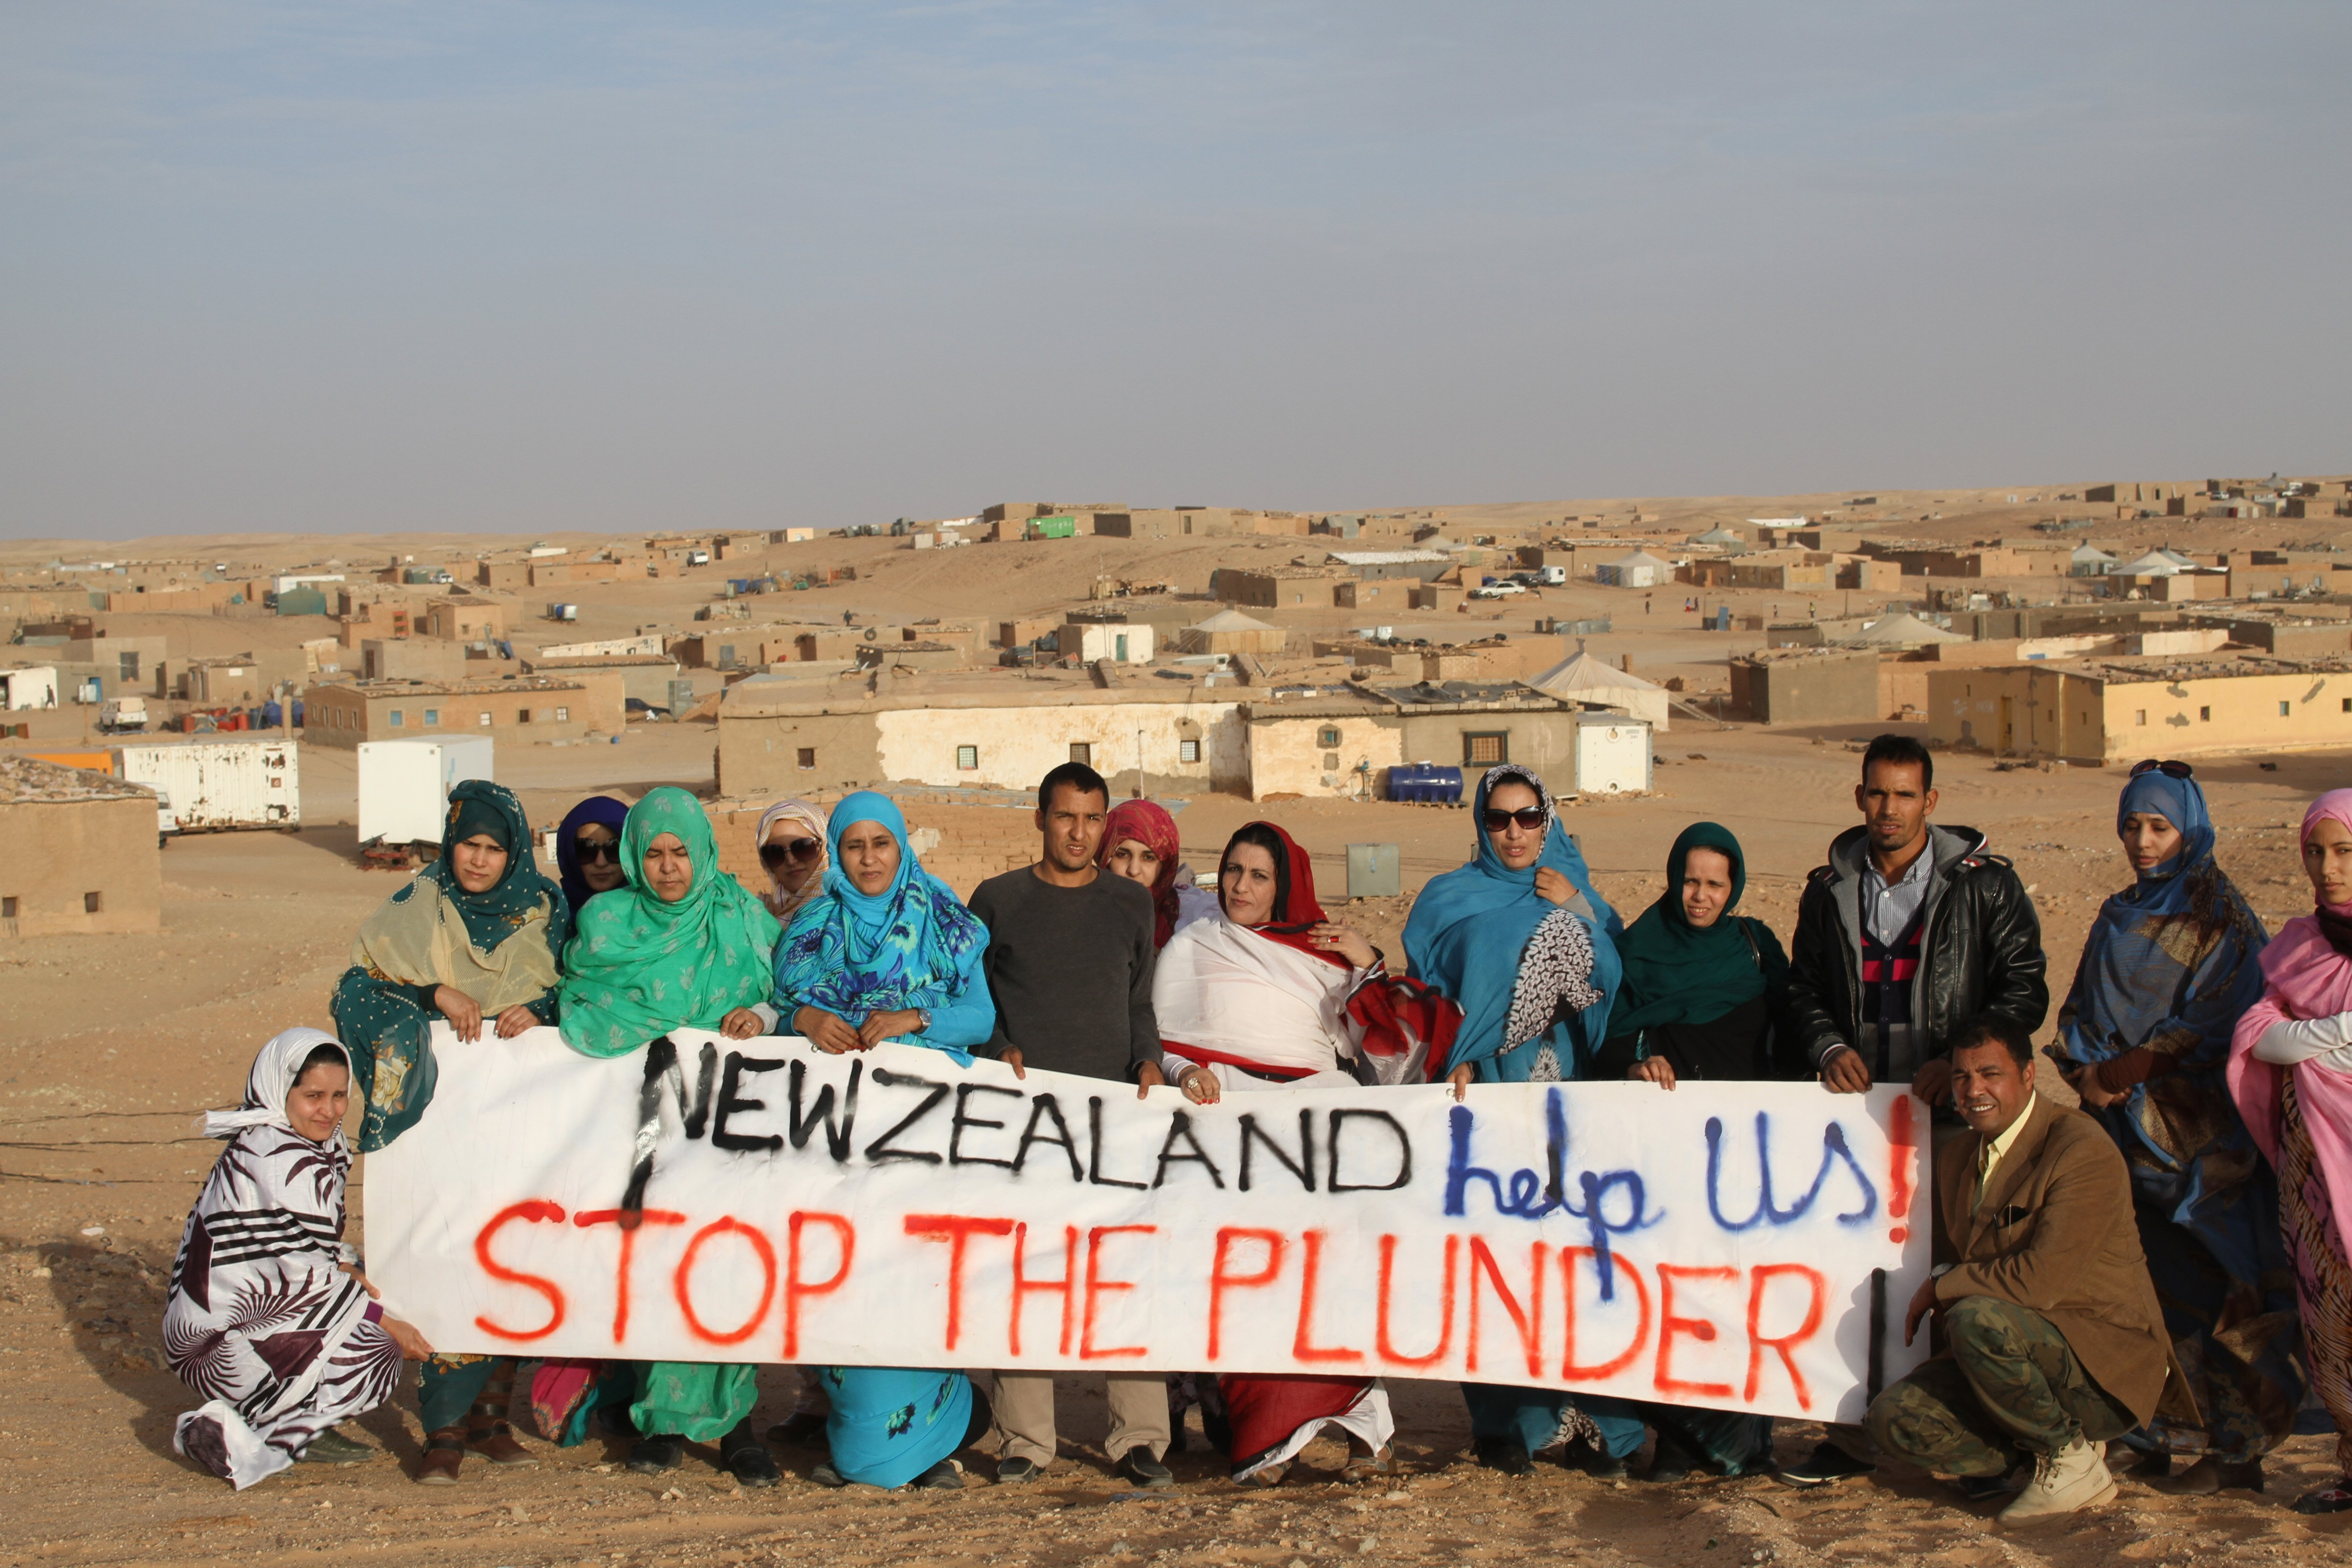 Saharawi refugees living in El-Aiun camp near Tindouf, in Algeria, protest against New Zealand's...